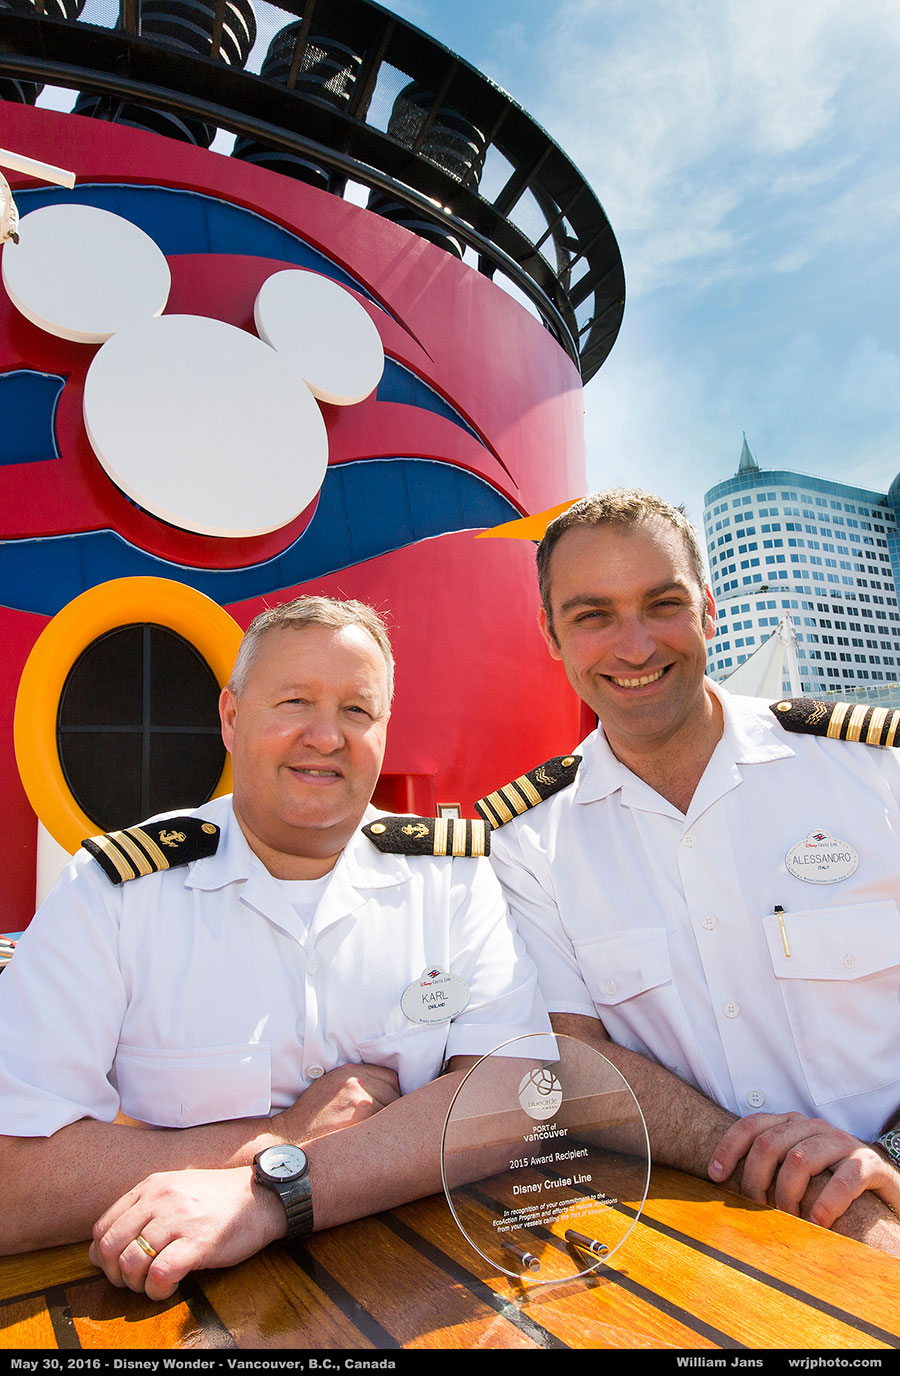 Disney Cruise Line Environmental Efforts Honored by the Port of Vancouver